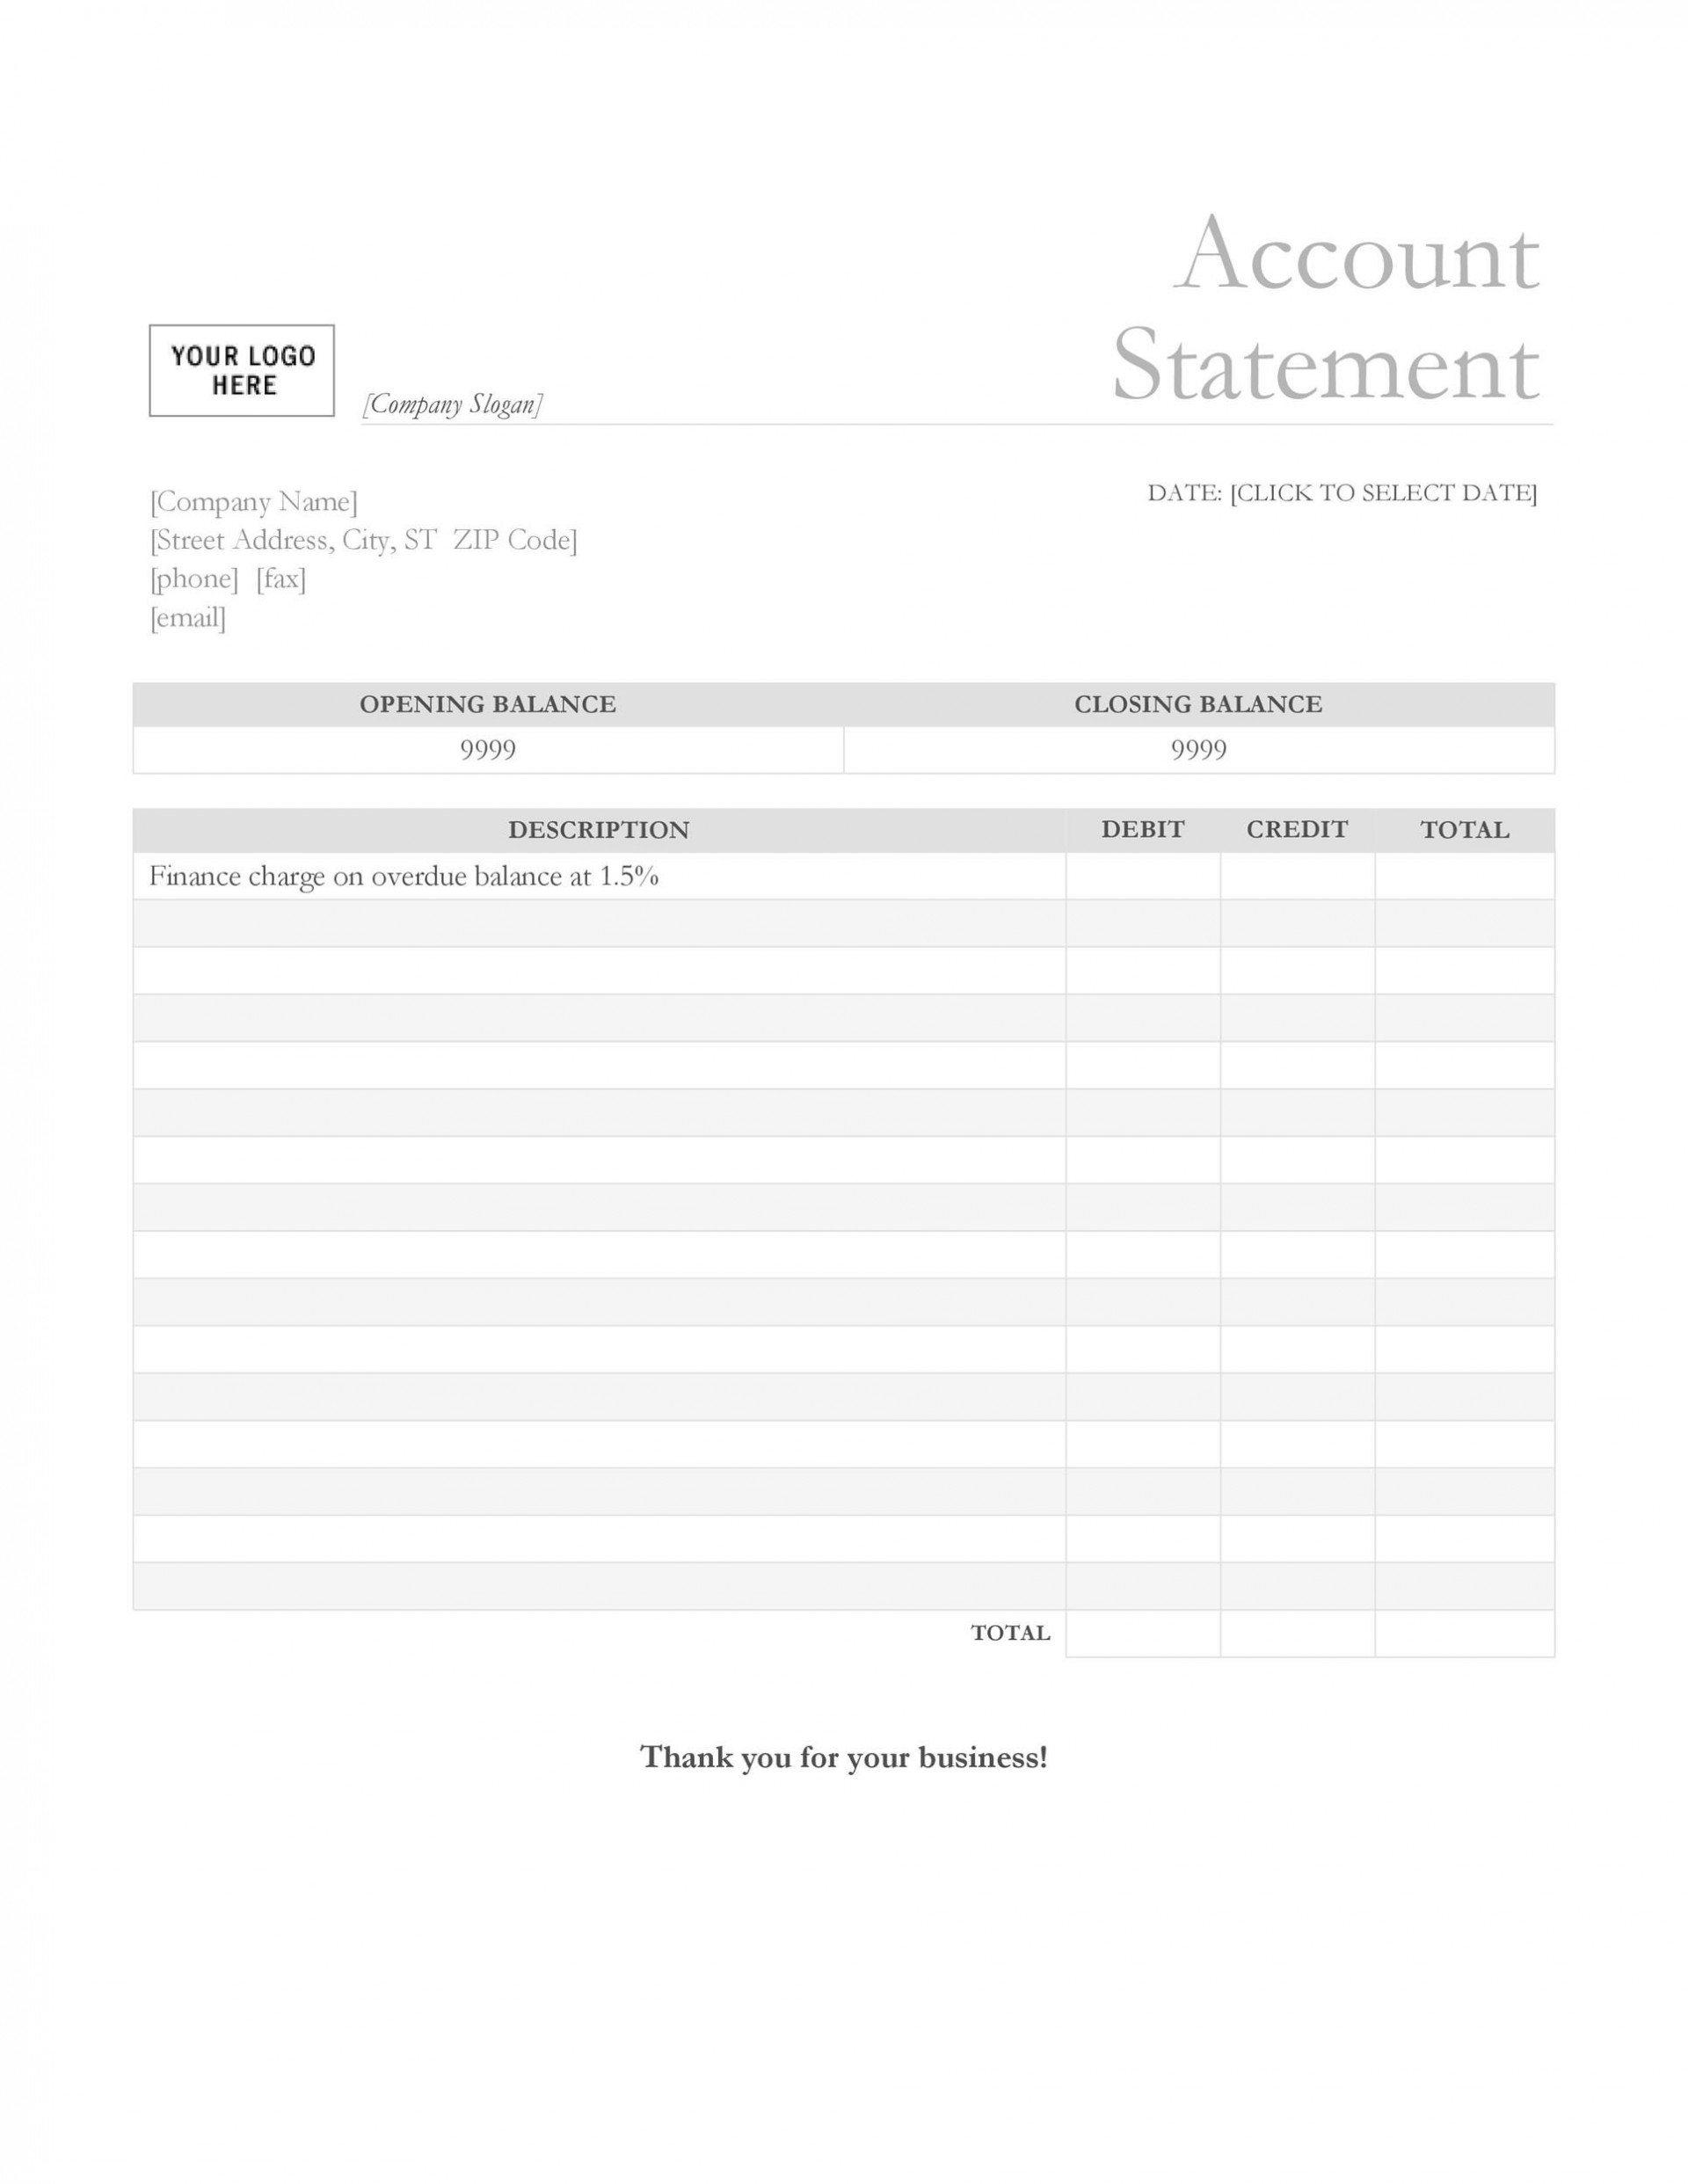 003 Exceptional Statement Of Account Template Photo  Singapore Excel Free Doc1920